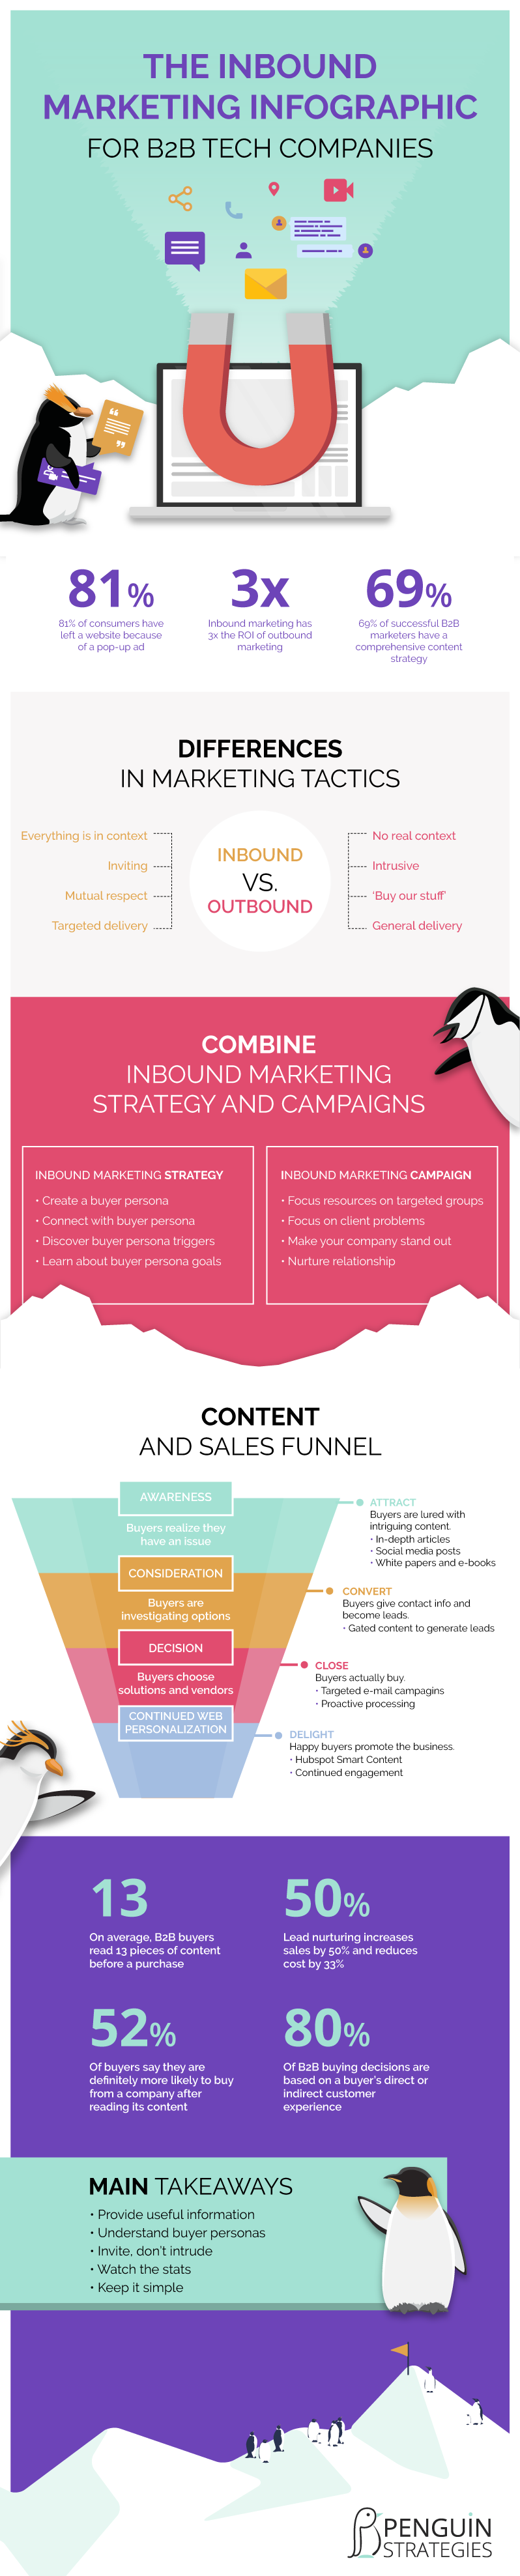 penguin-inbound-marketing-infographic-1